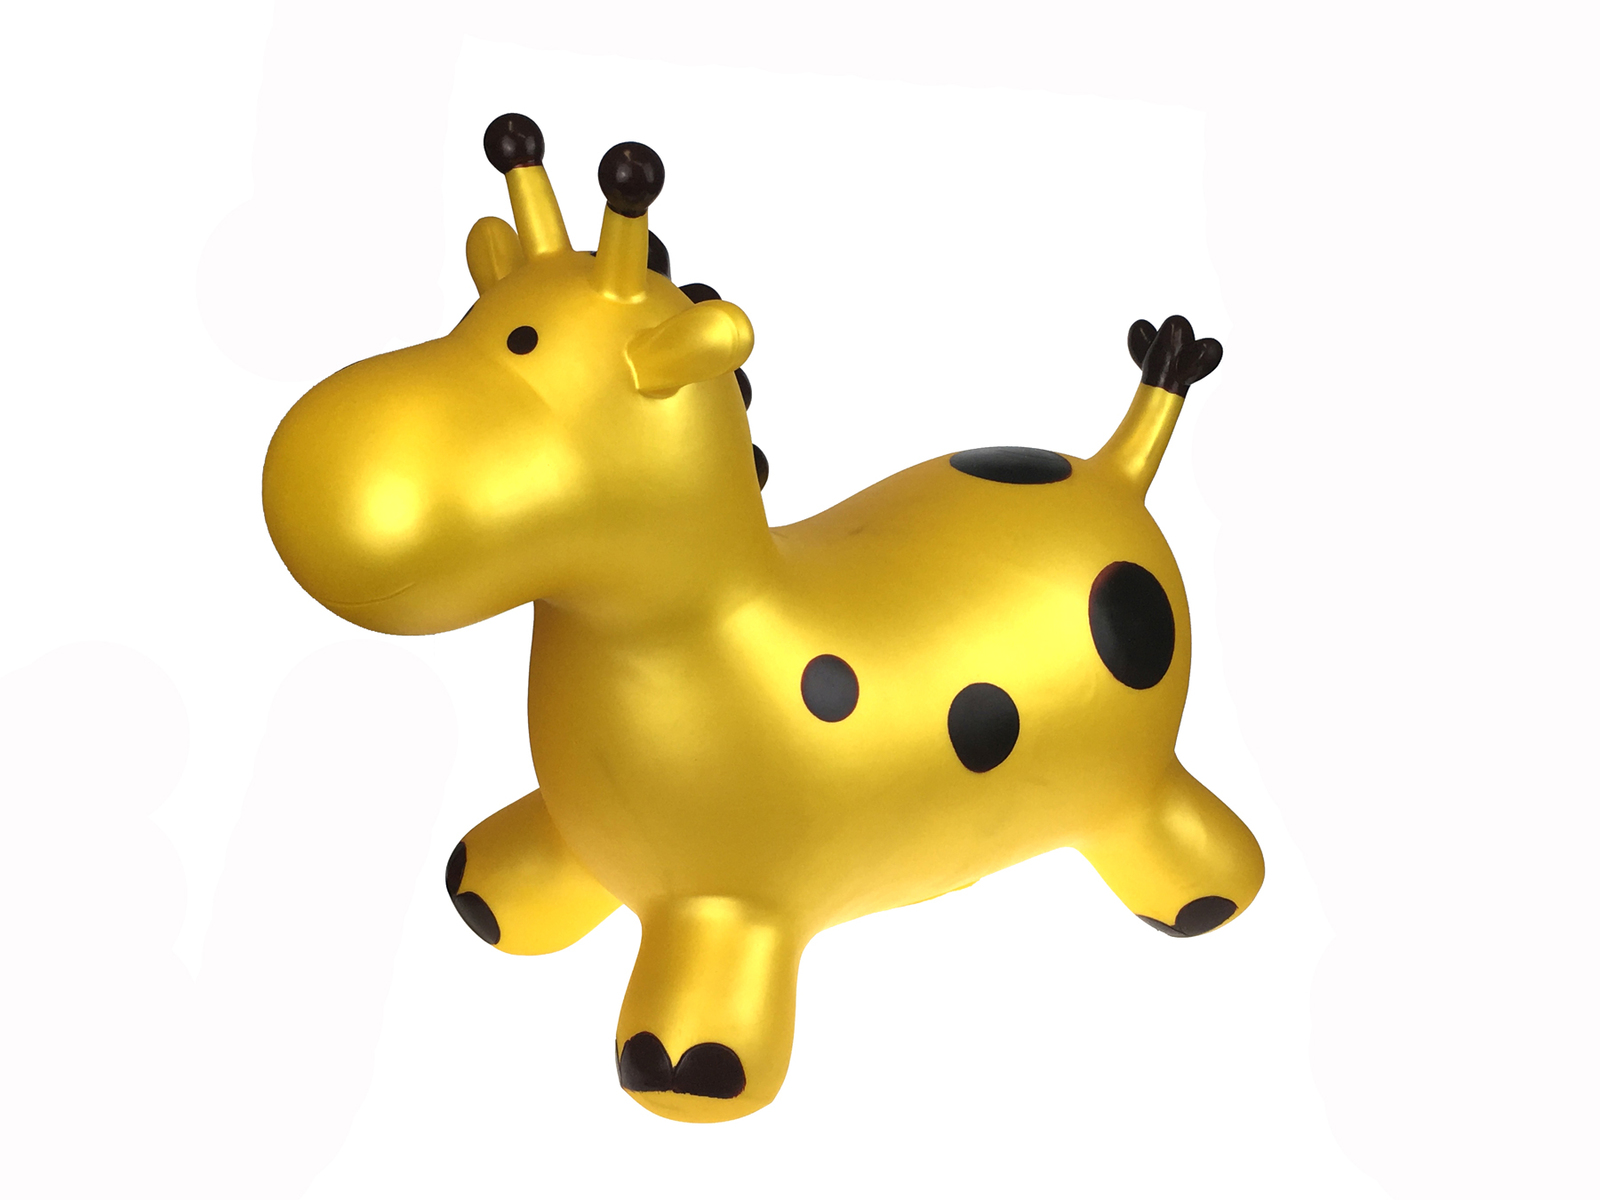 Bouncy Rider Gold Giraffe by Kaper Kidz